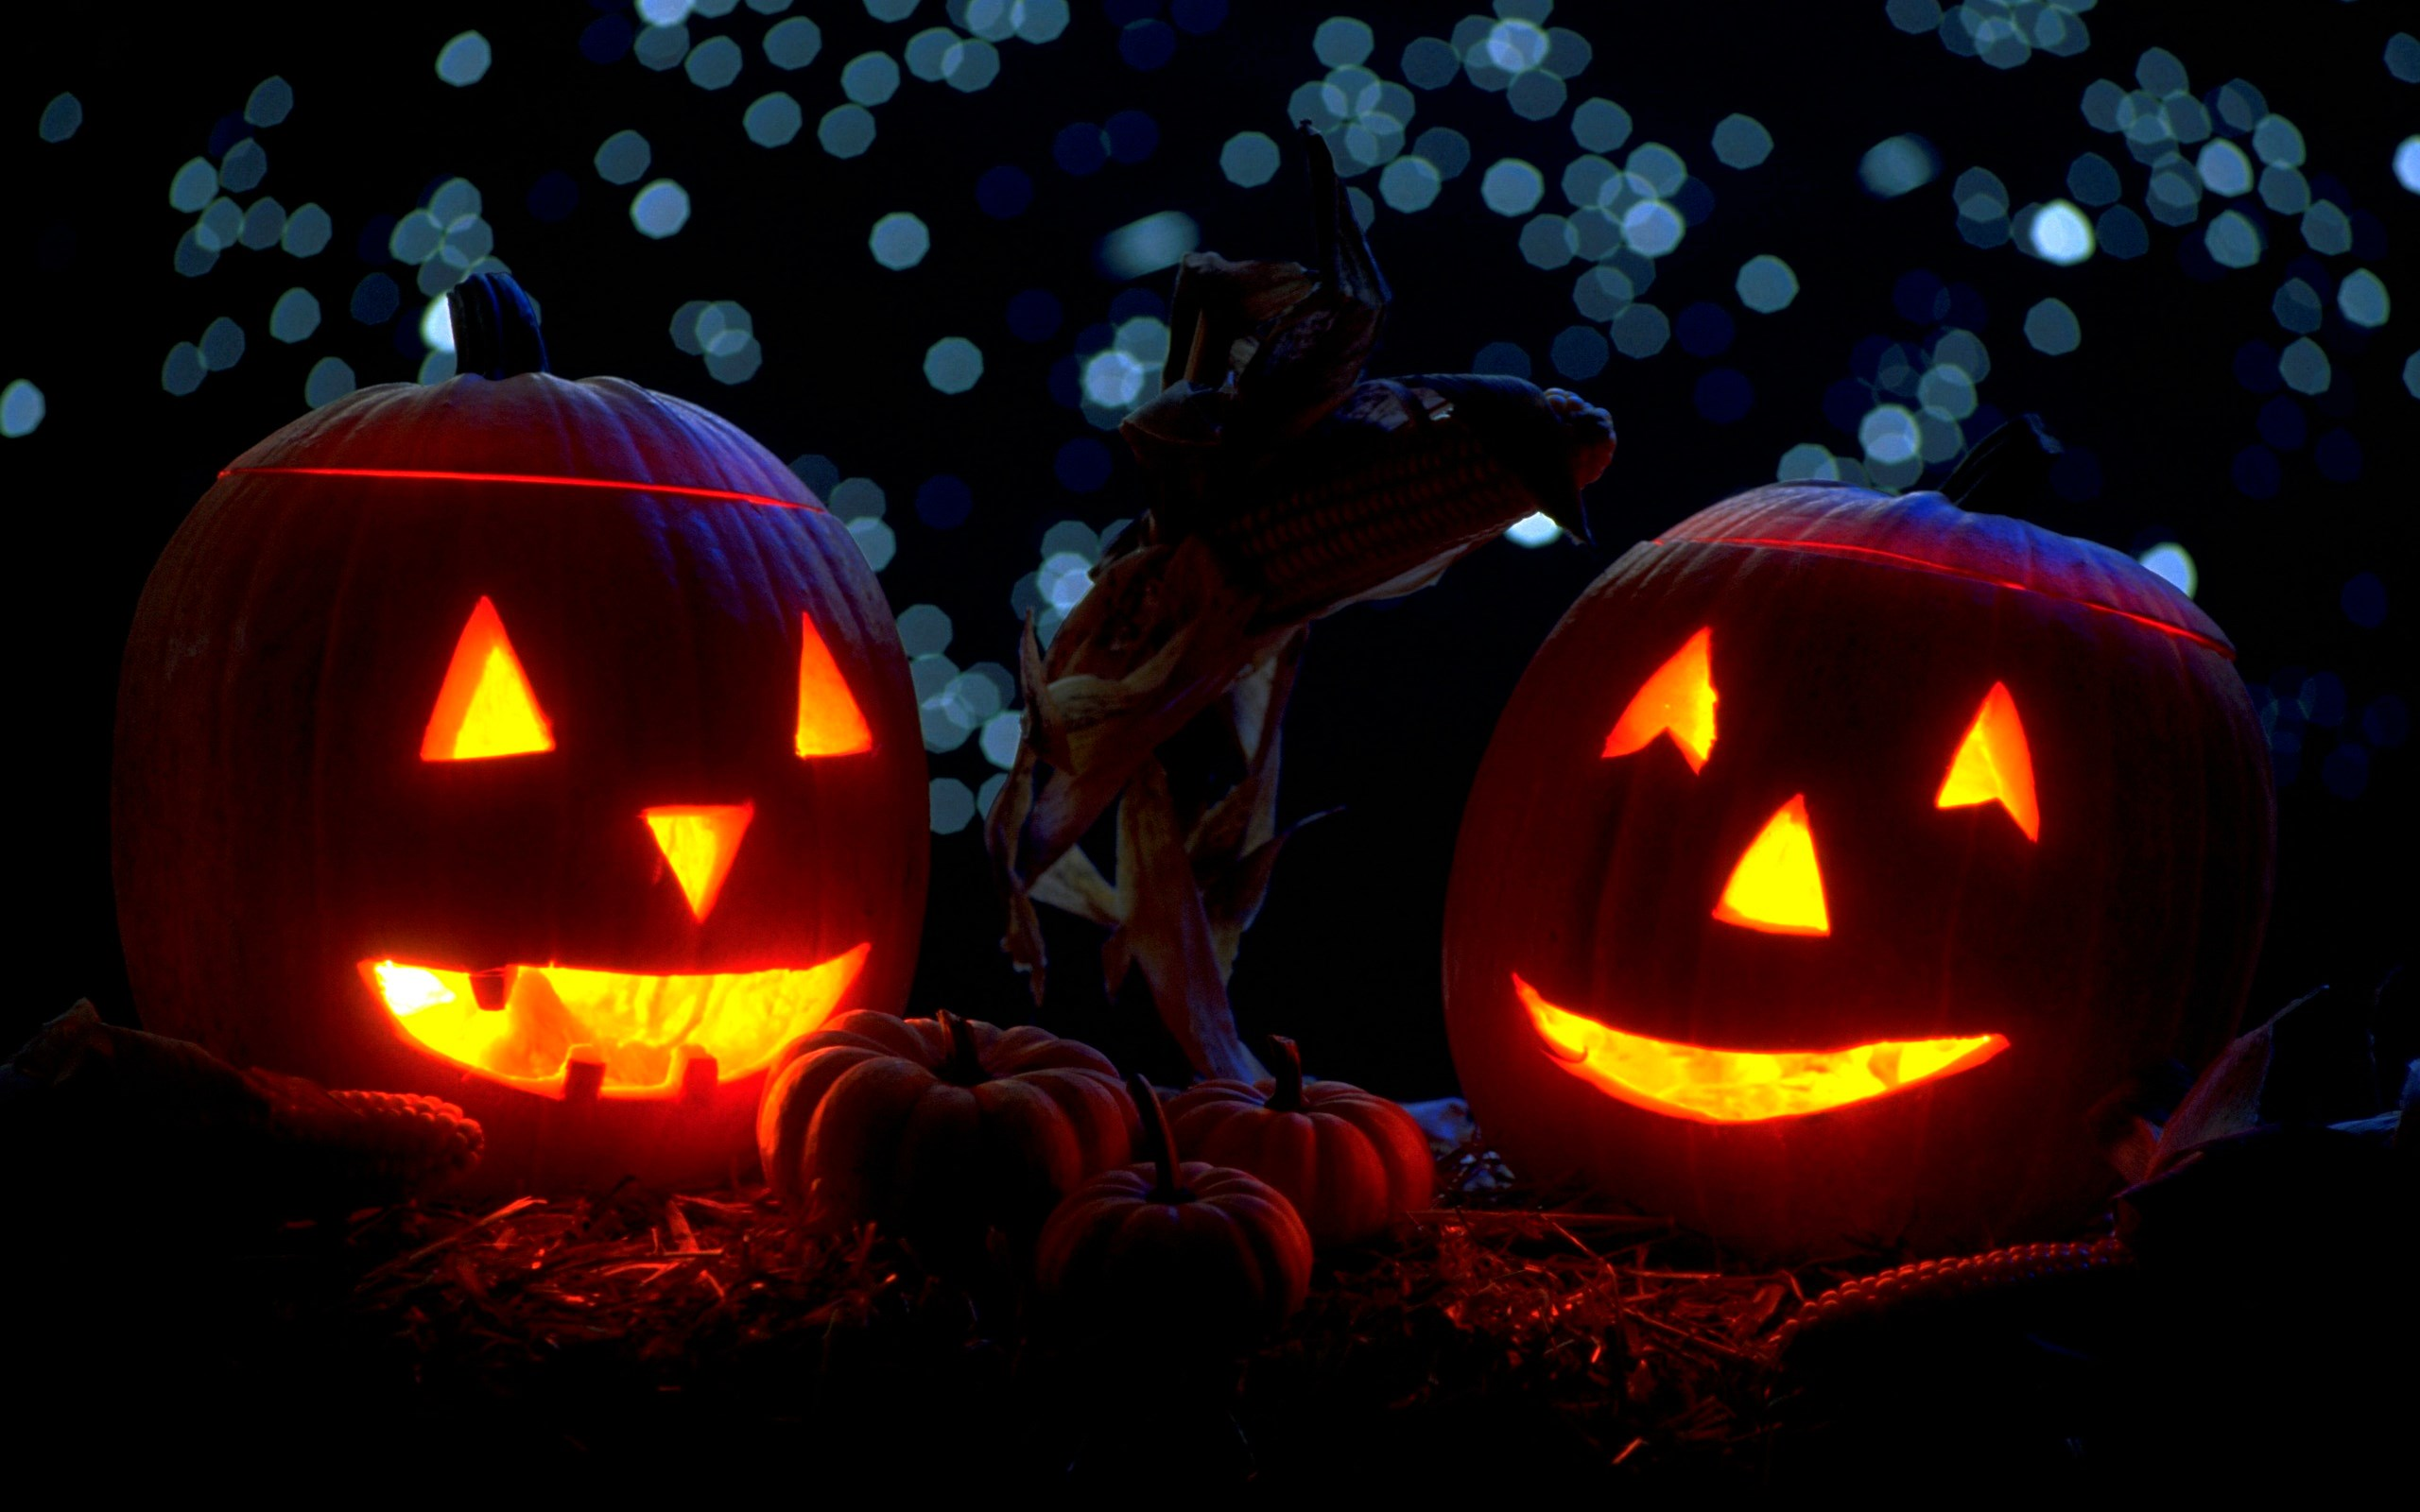 60+] Beautiful Halloween Desktop Wallpaper on WallpaperSafari